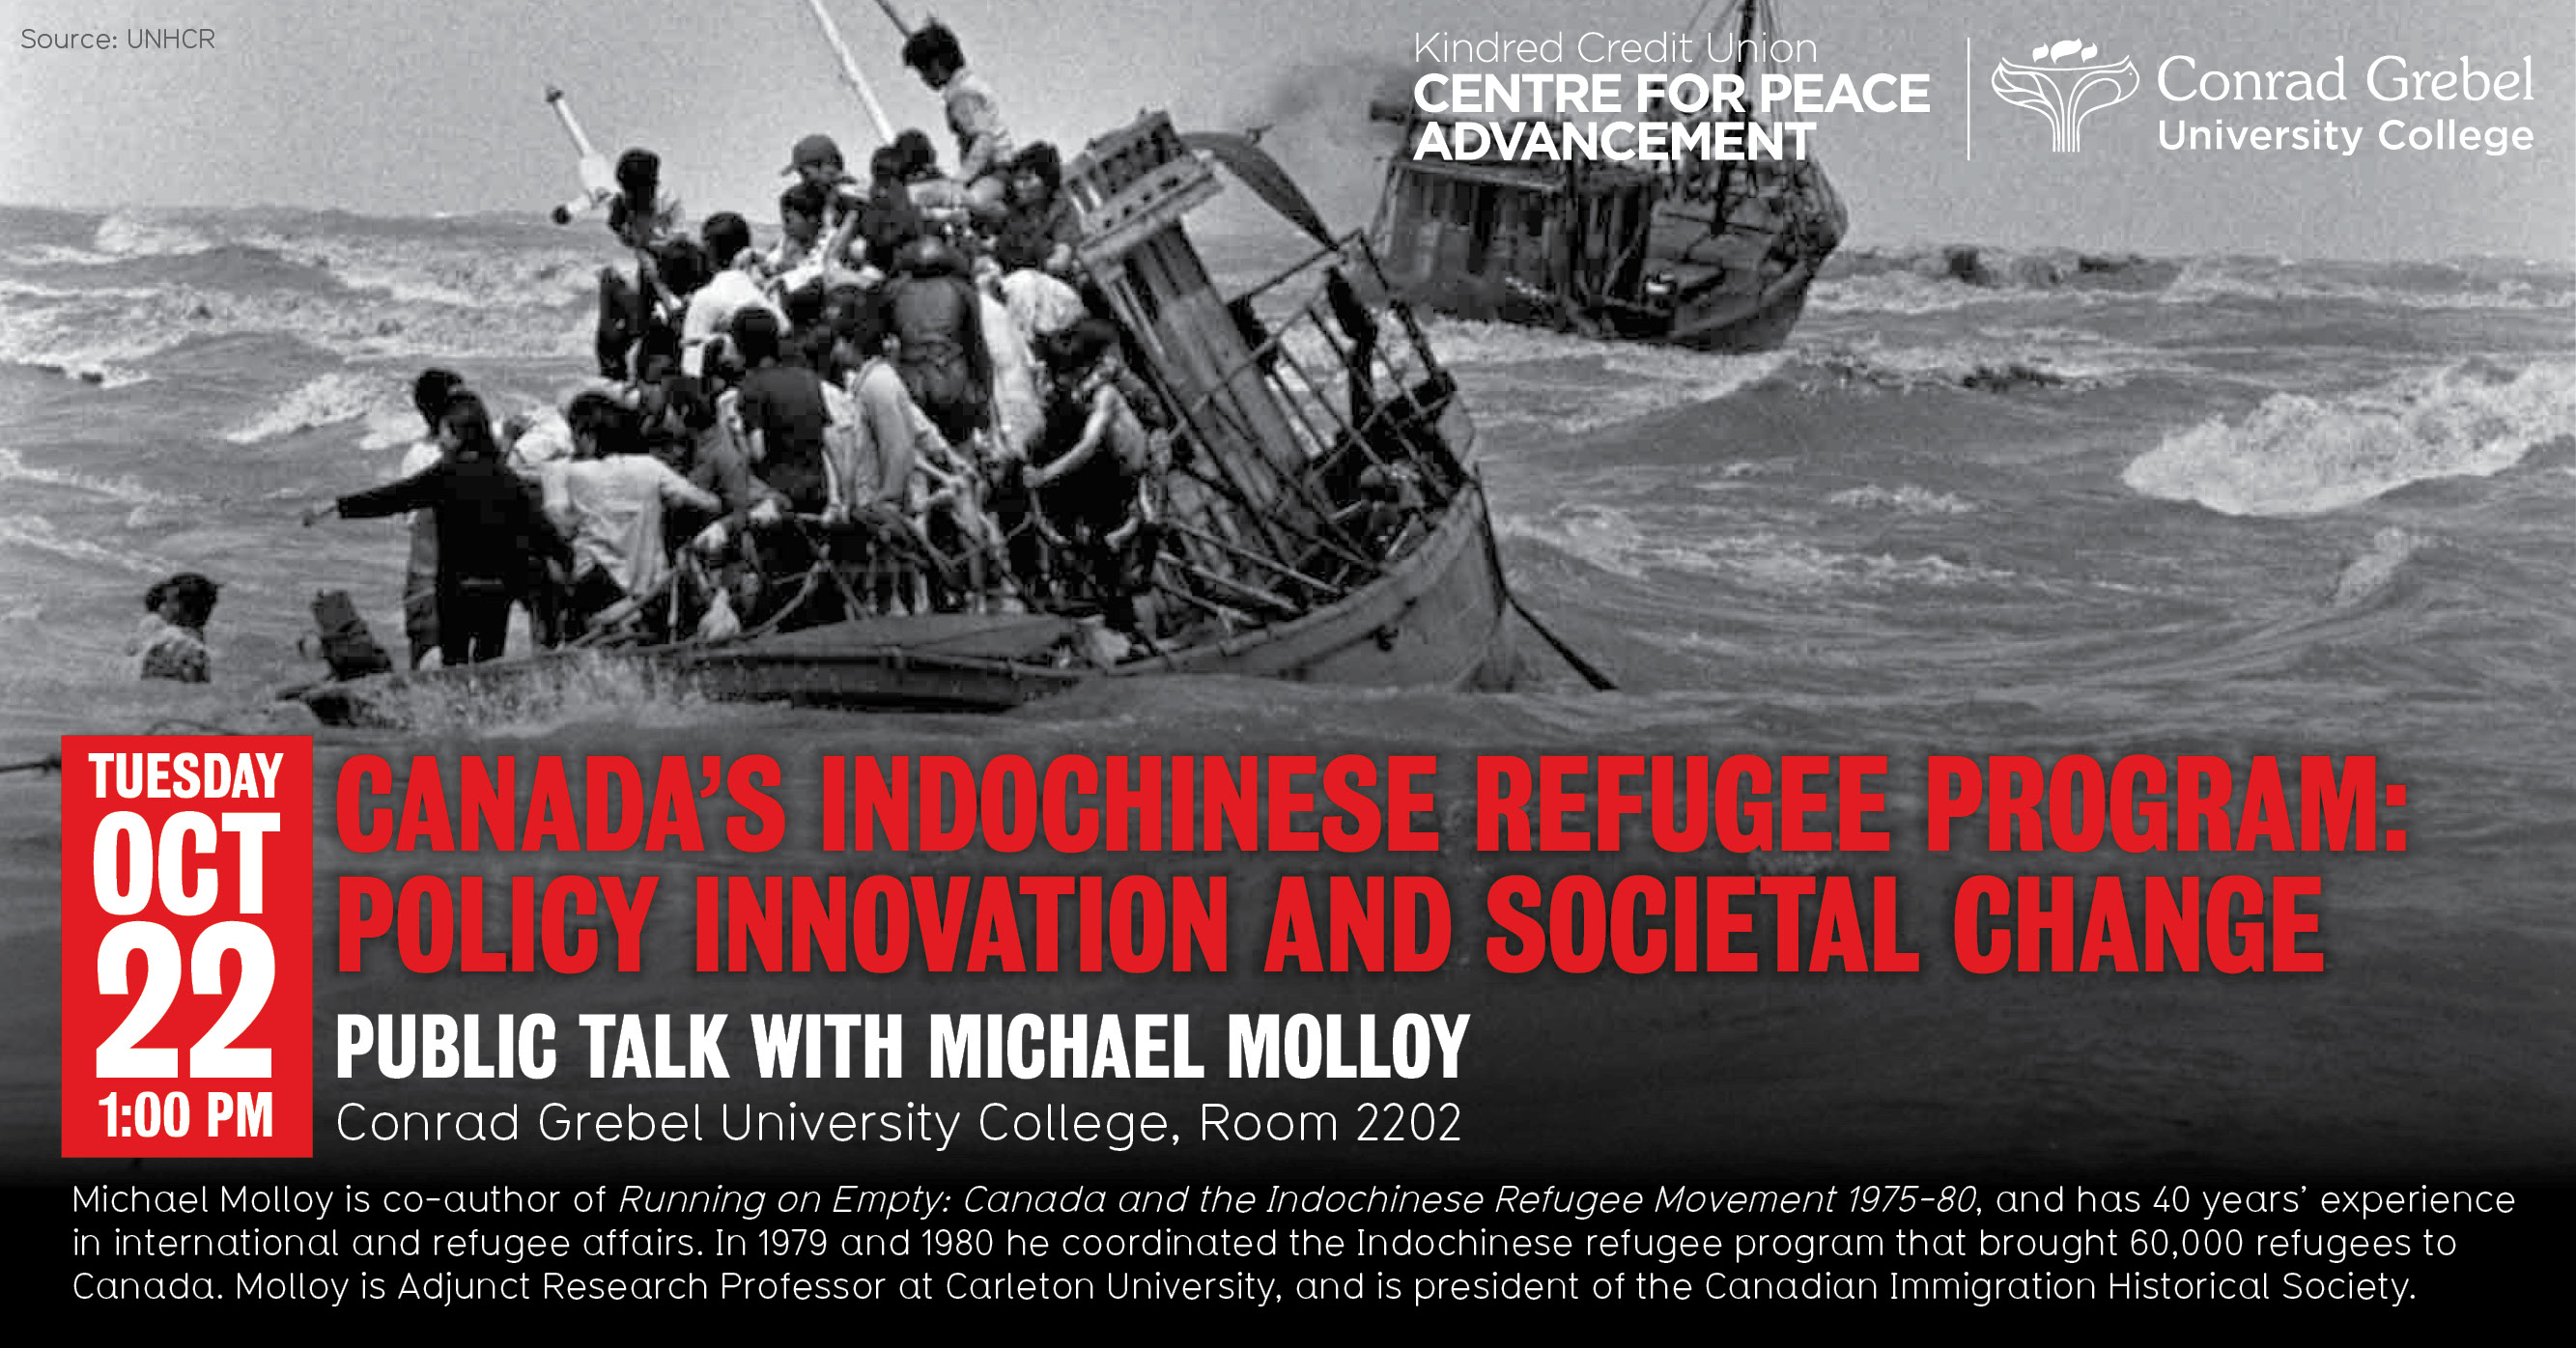 Poster for Public Talk with Michael Molloy with picture of refugees on a boat